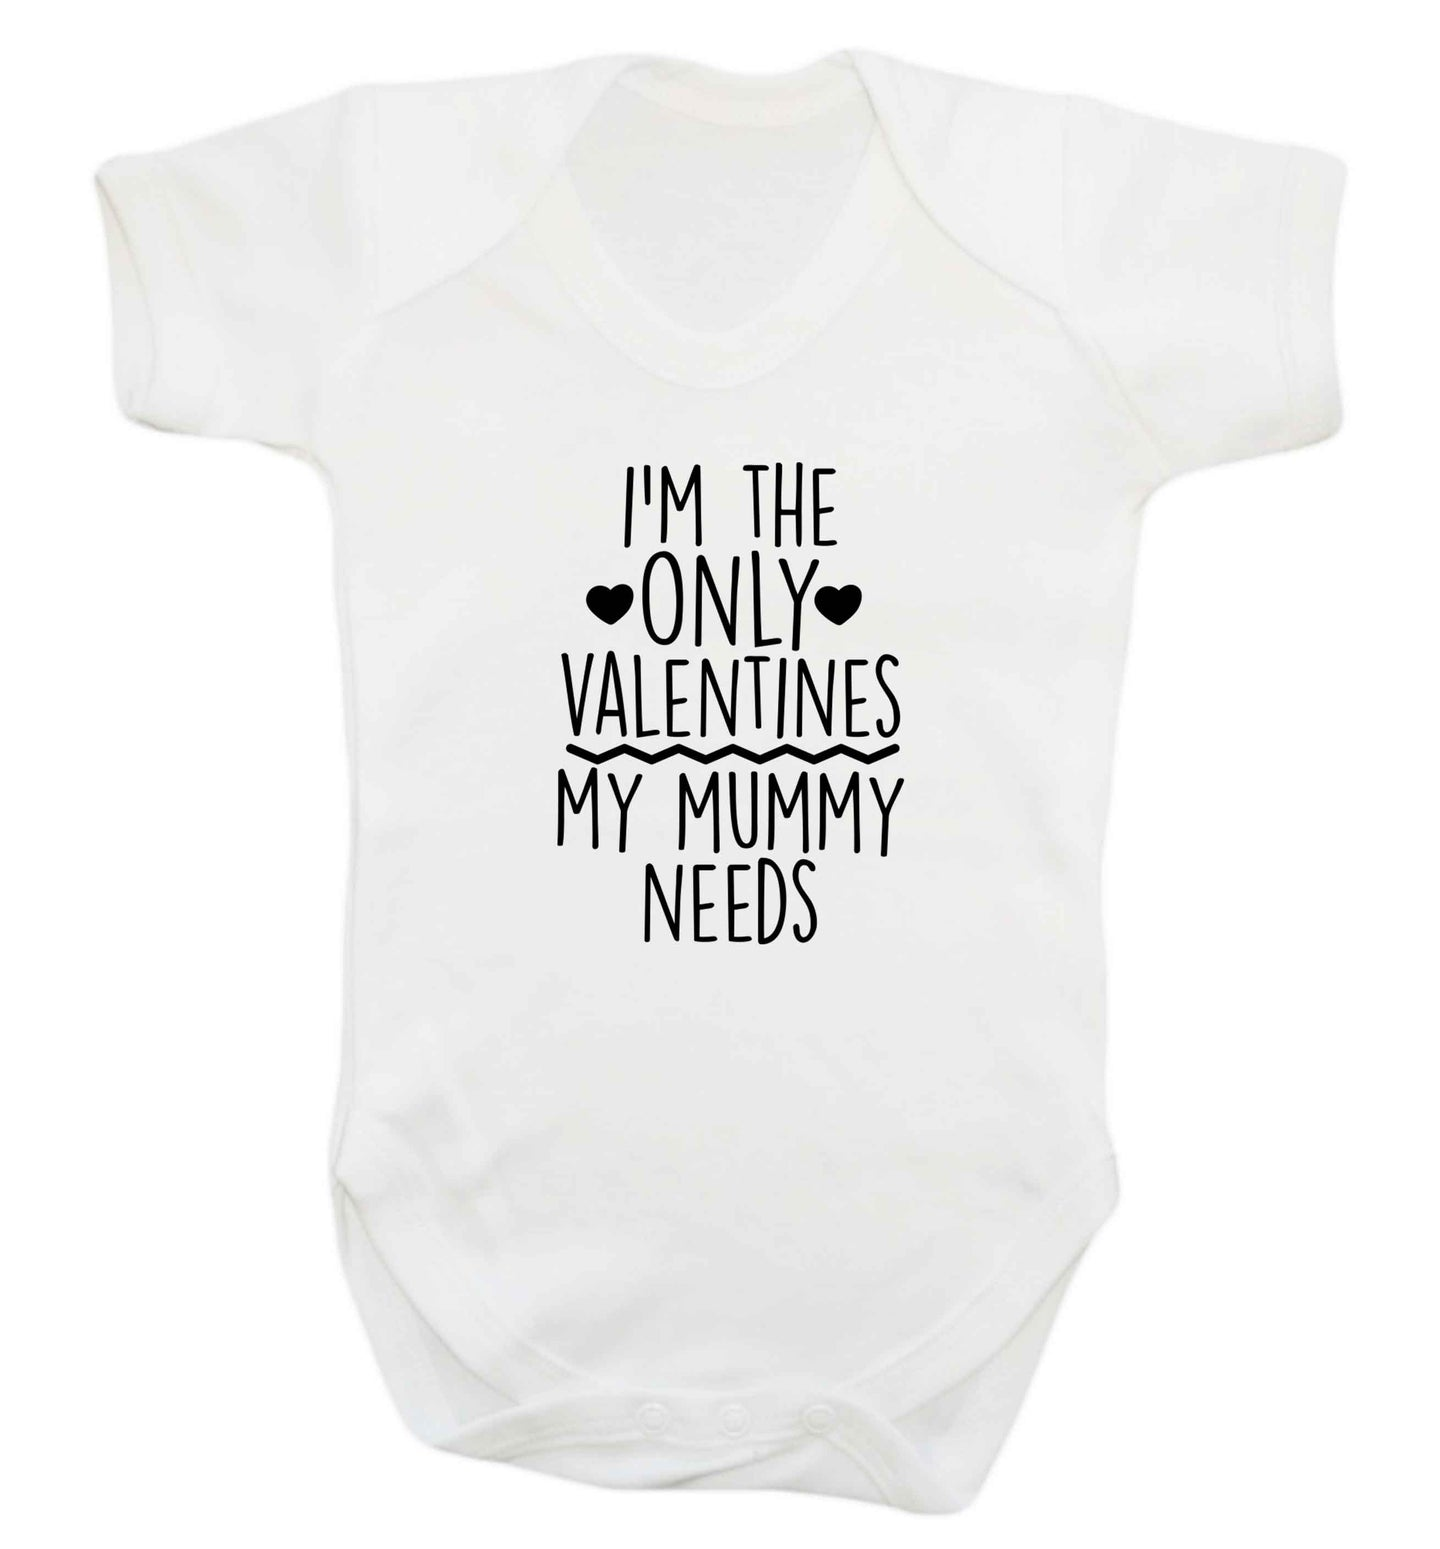 I'm the only valentines my mummy needs baby vest white 18-24 months